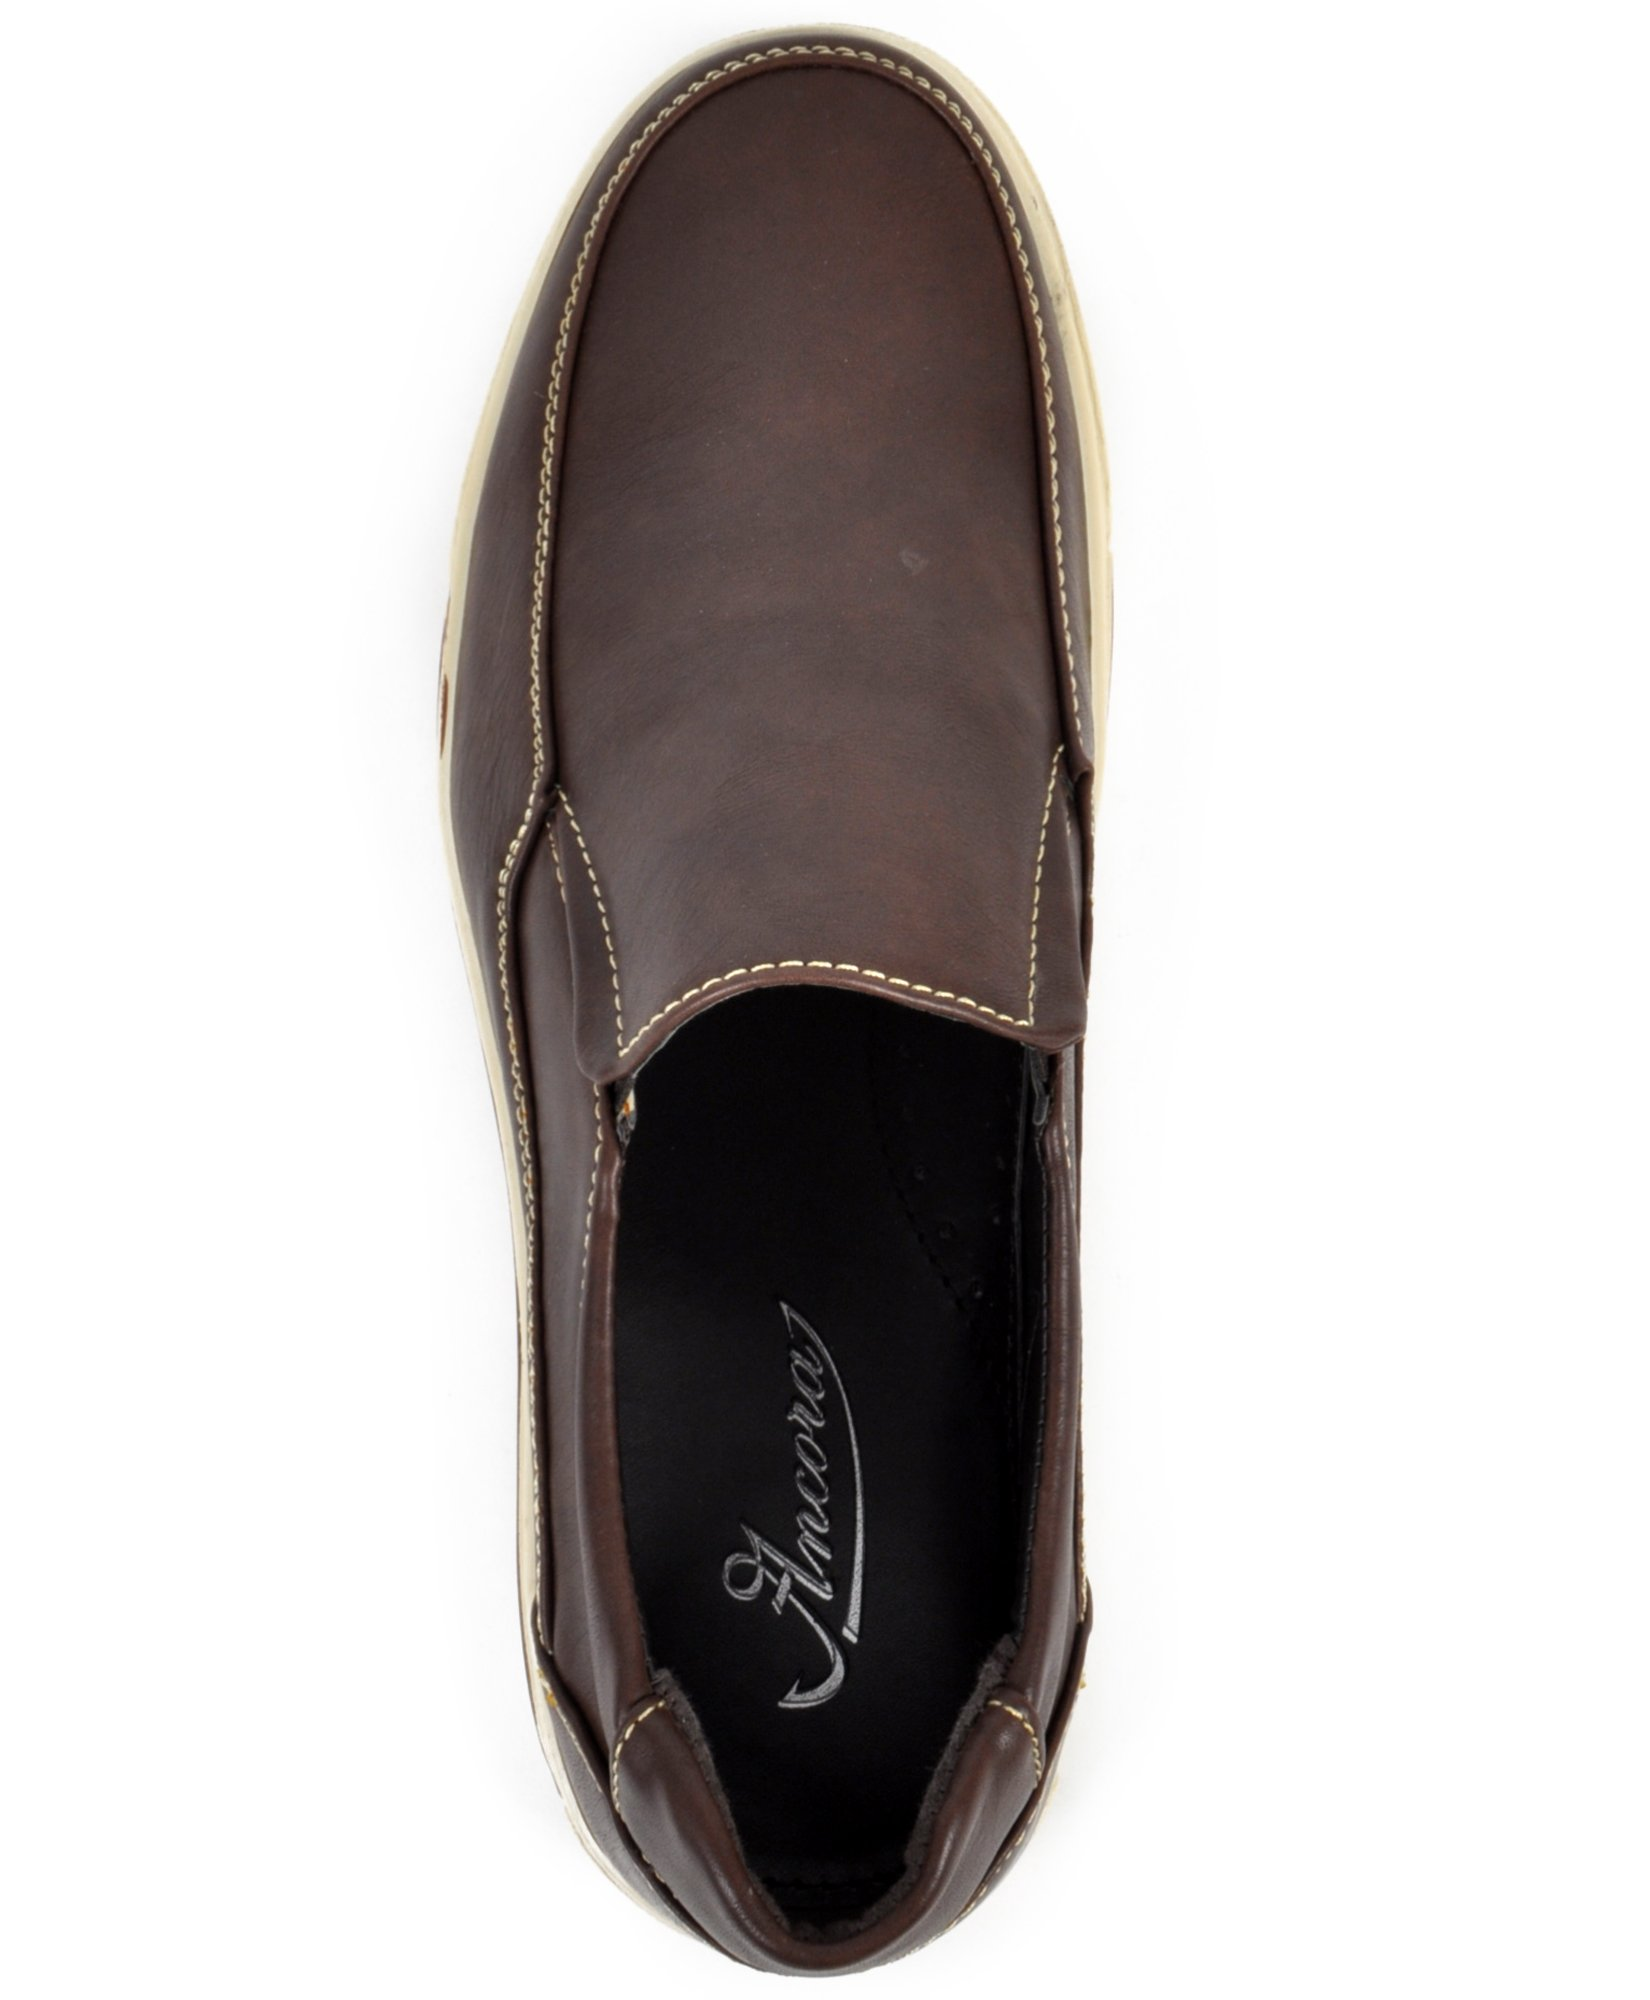 Men's Comfort Stride Loafers (9.5C, Brown) by boxed-gifts (Image #2)